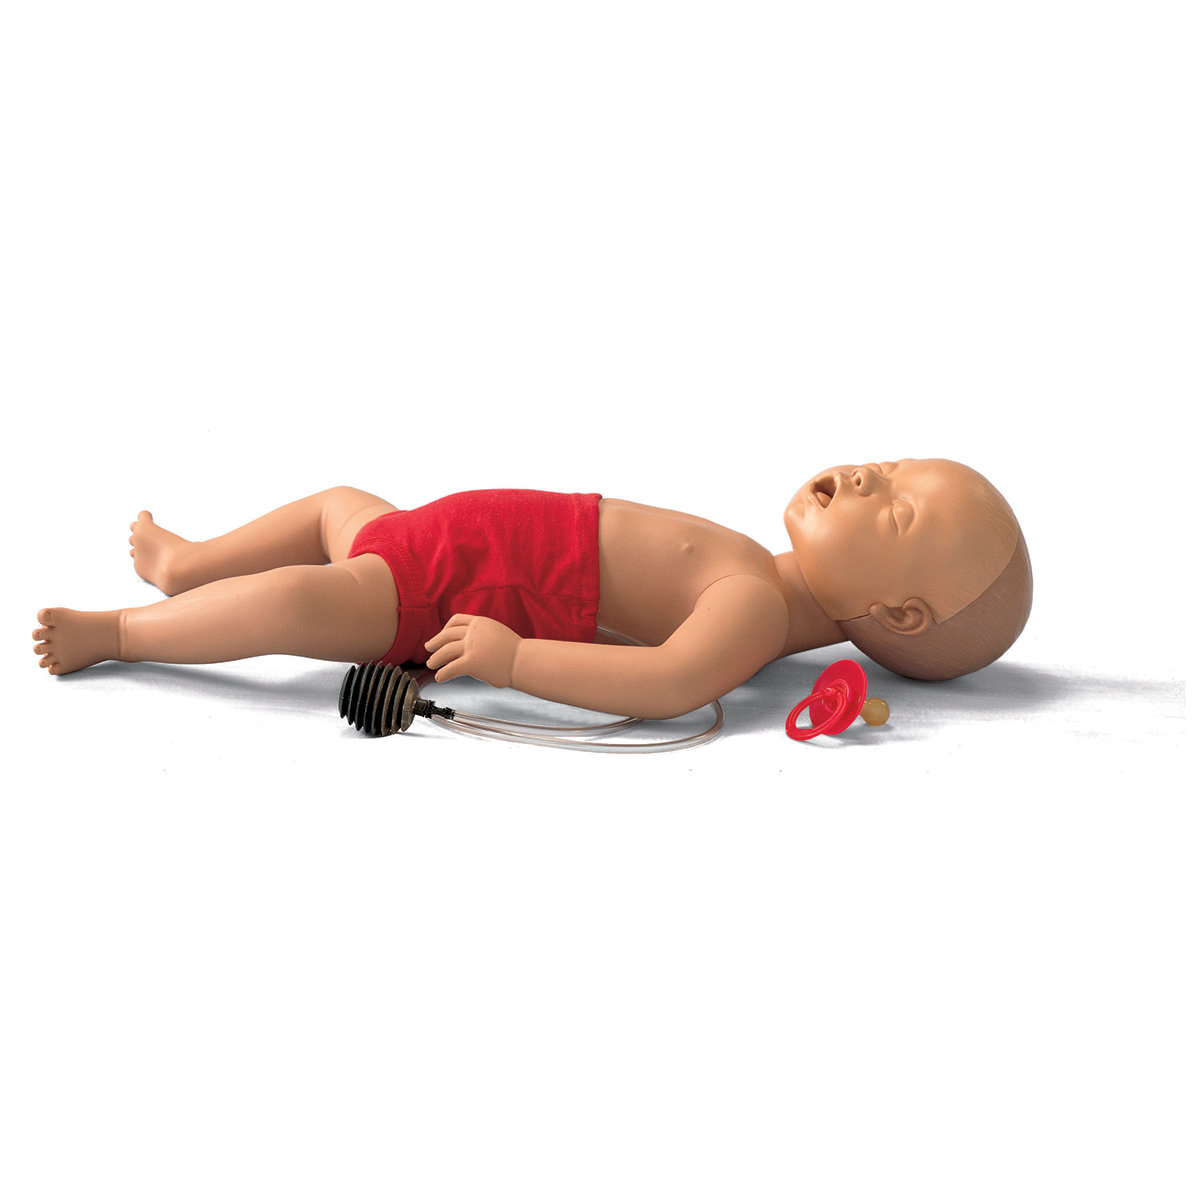 Ambu® Baby Training Manikin